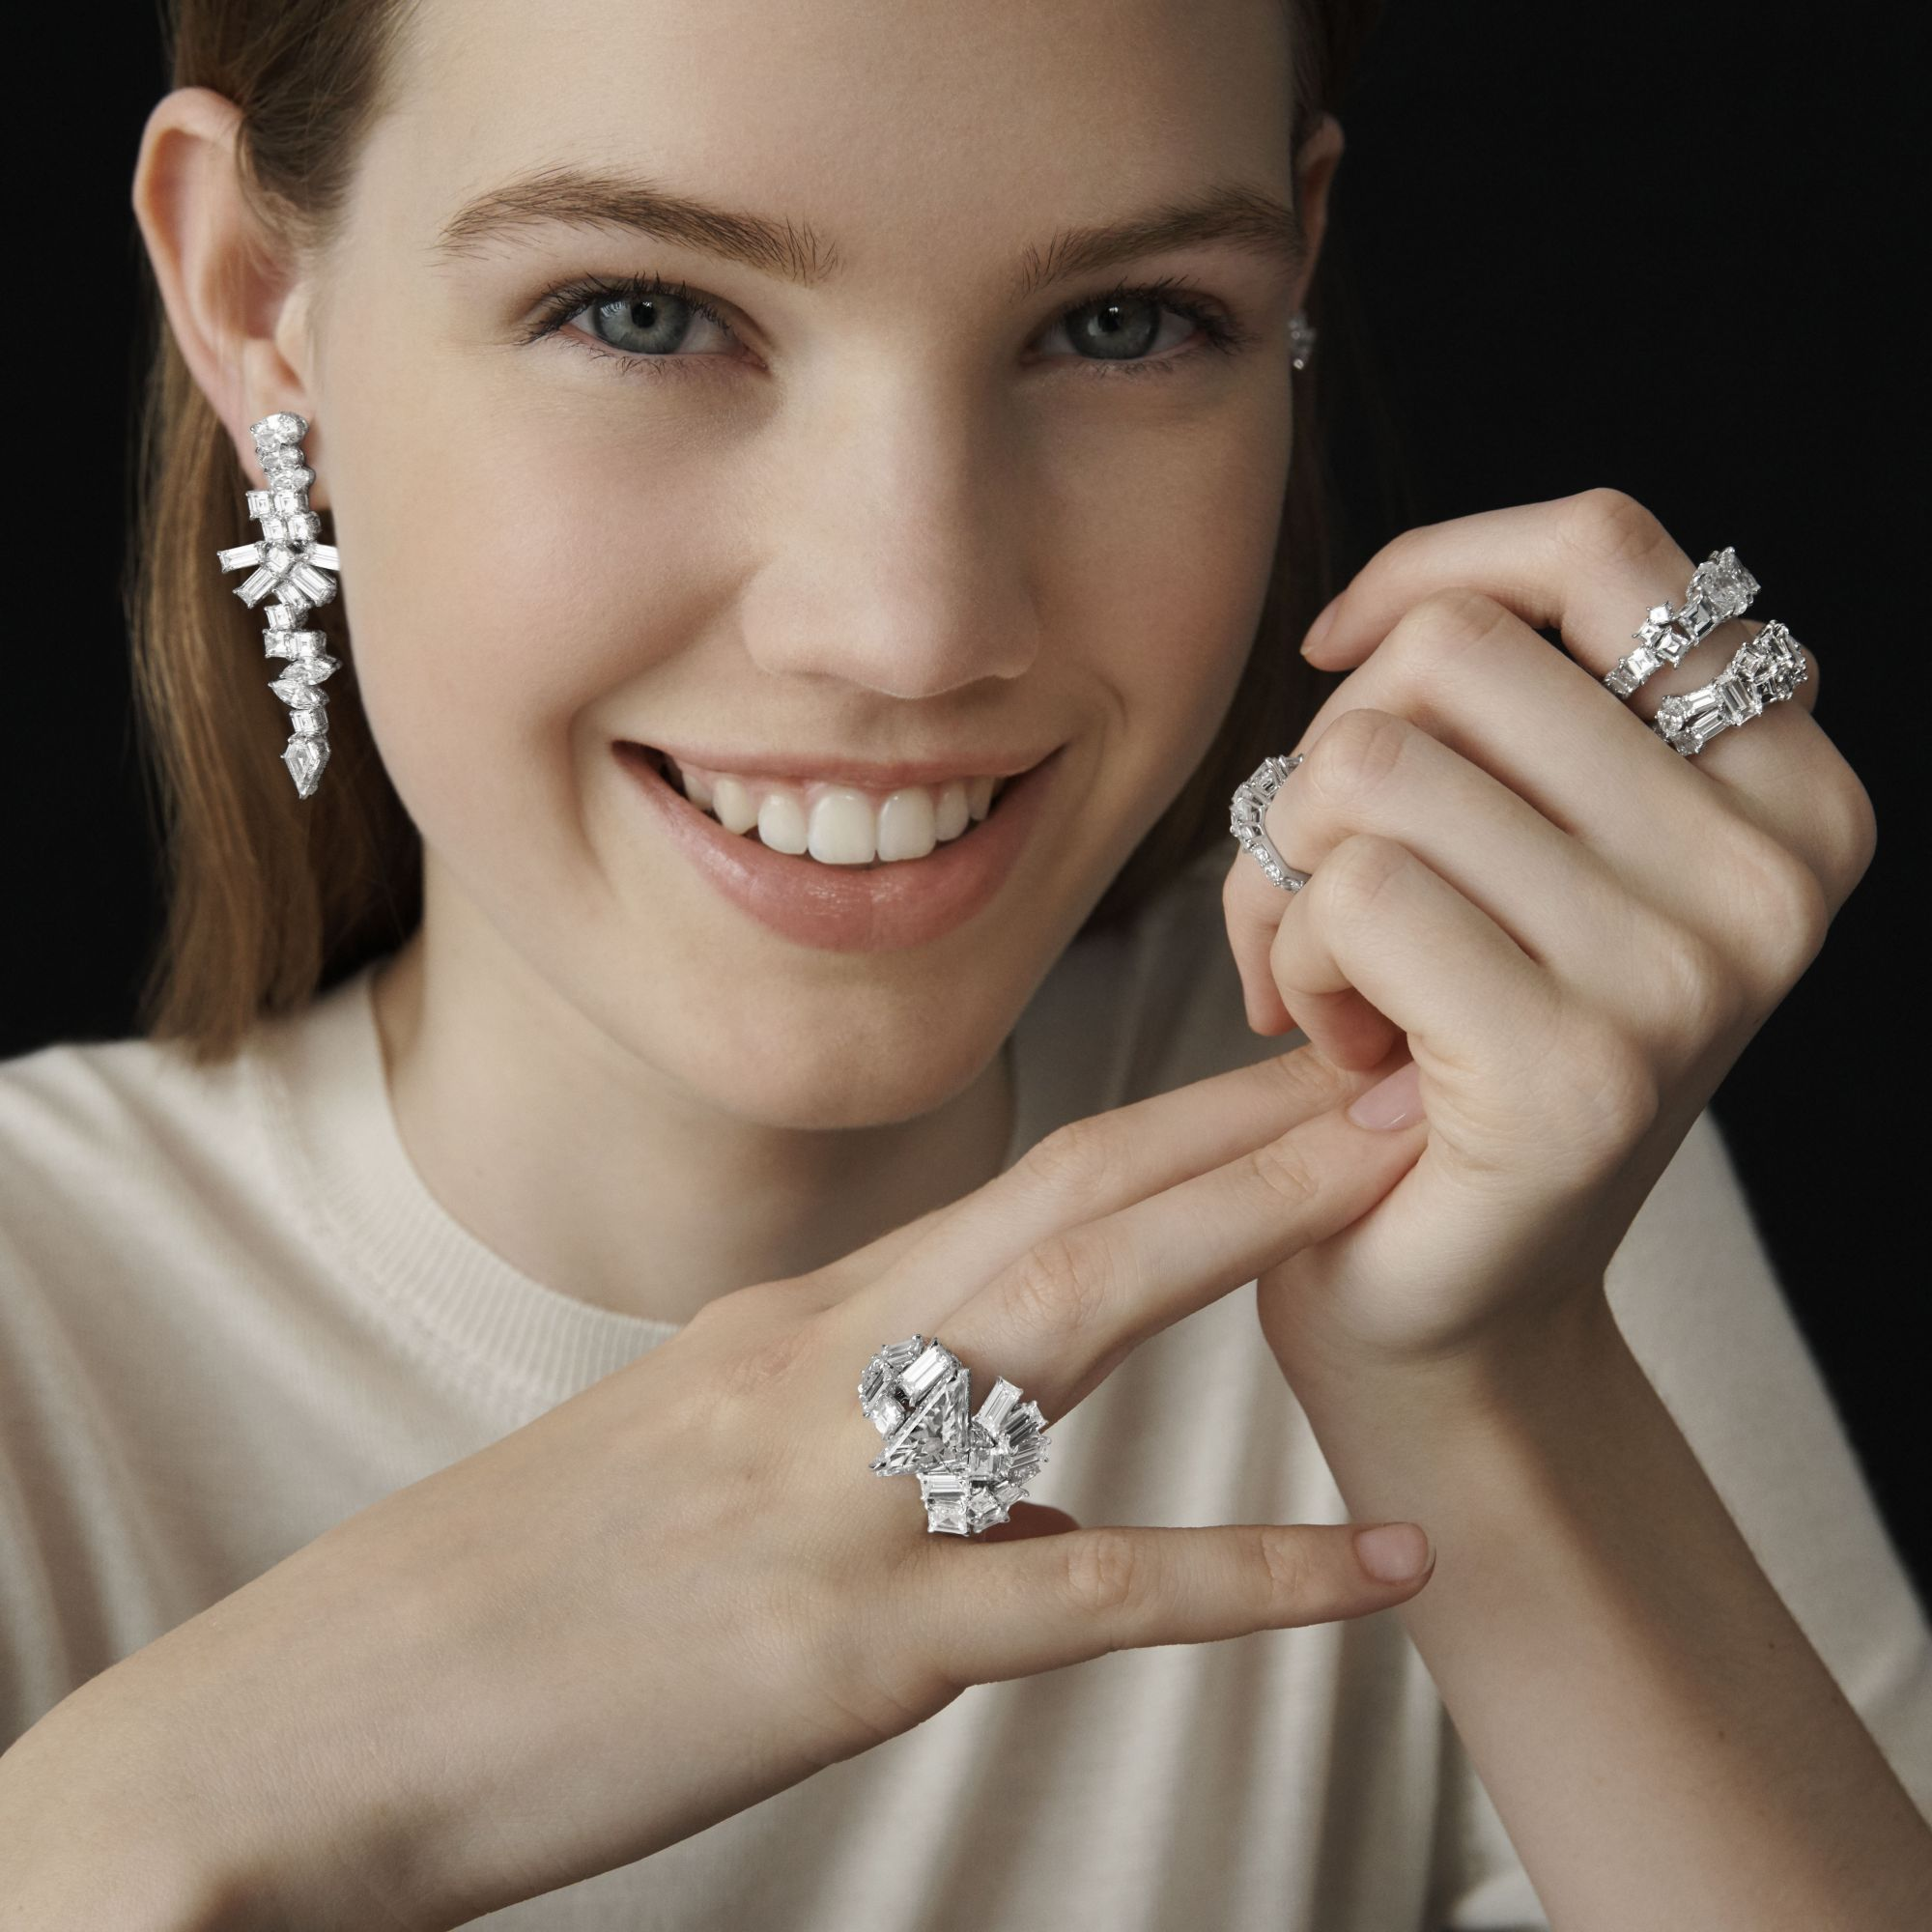 Dior Joaillerie Celebrates 20 Years With Special Gem Dior Collection